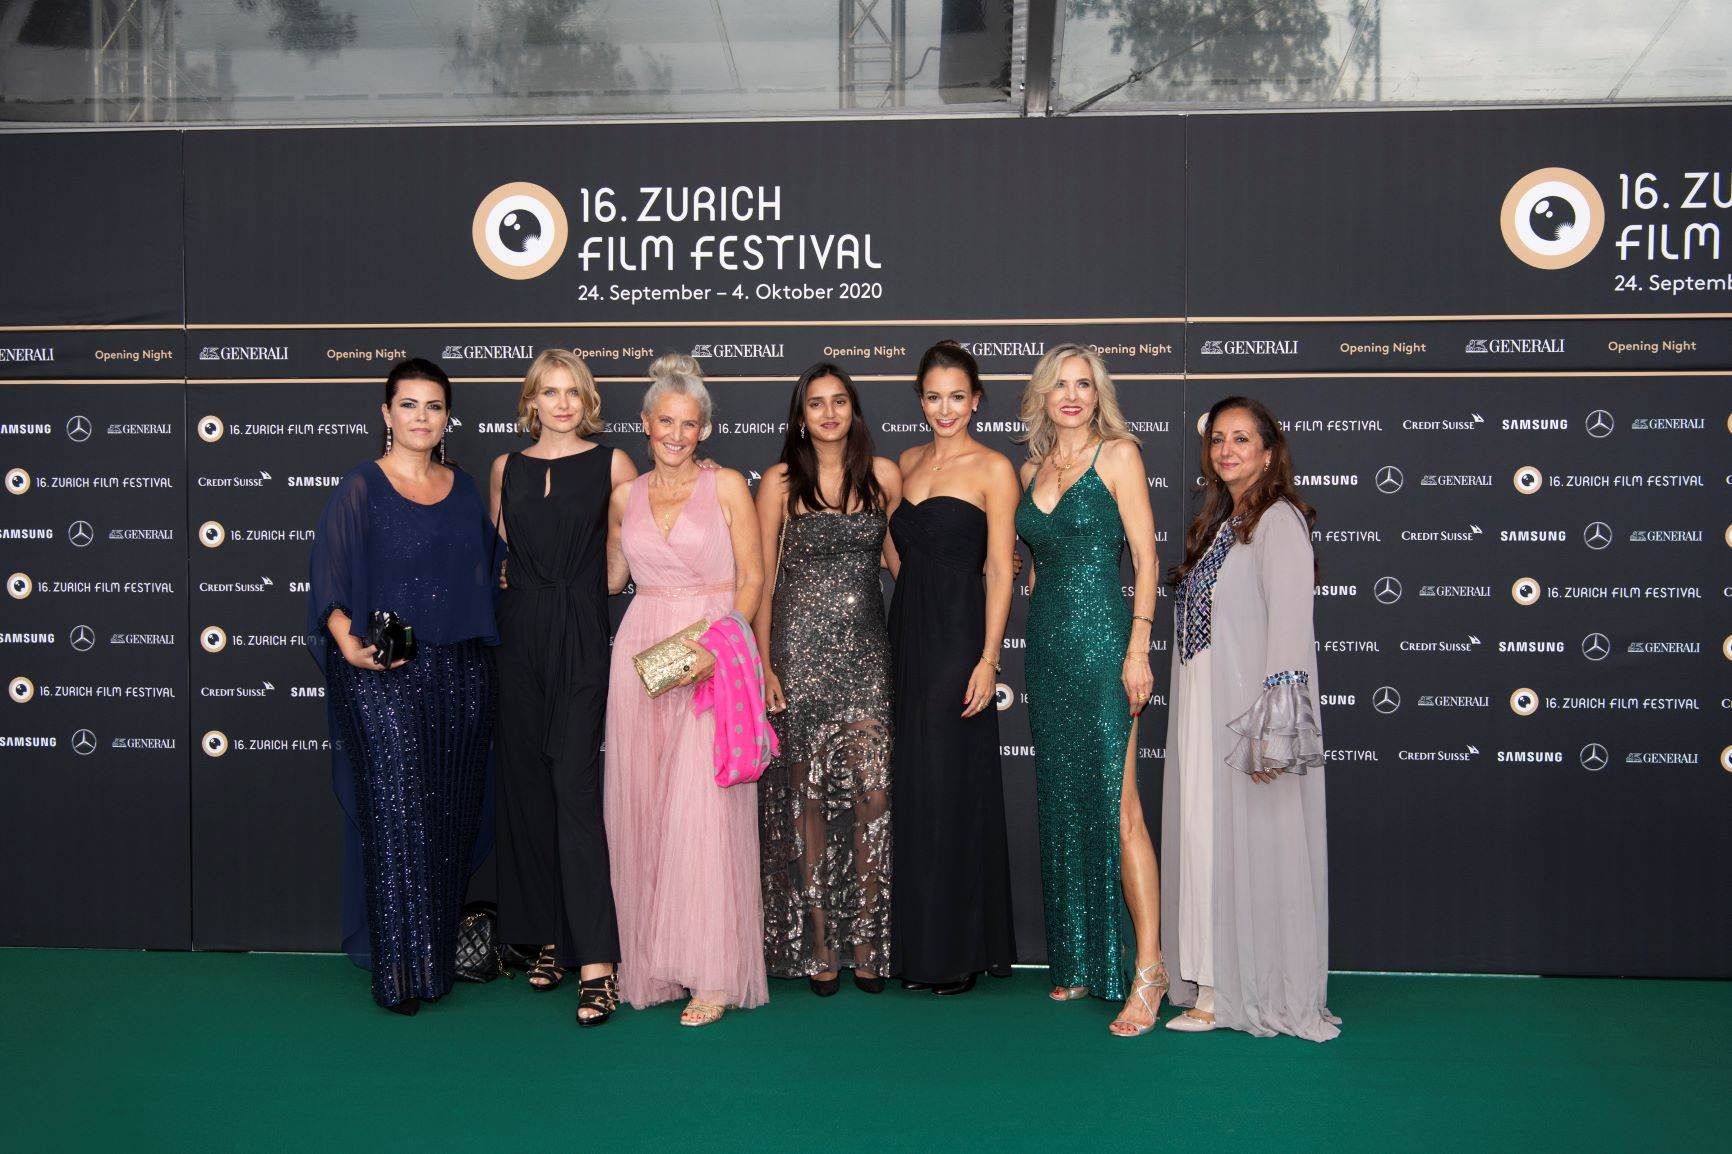 Fashion & Celebrities at the 16th Zurich Film Festival 2020 LivingFlawless.com